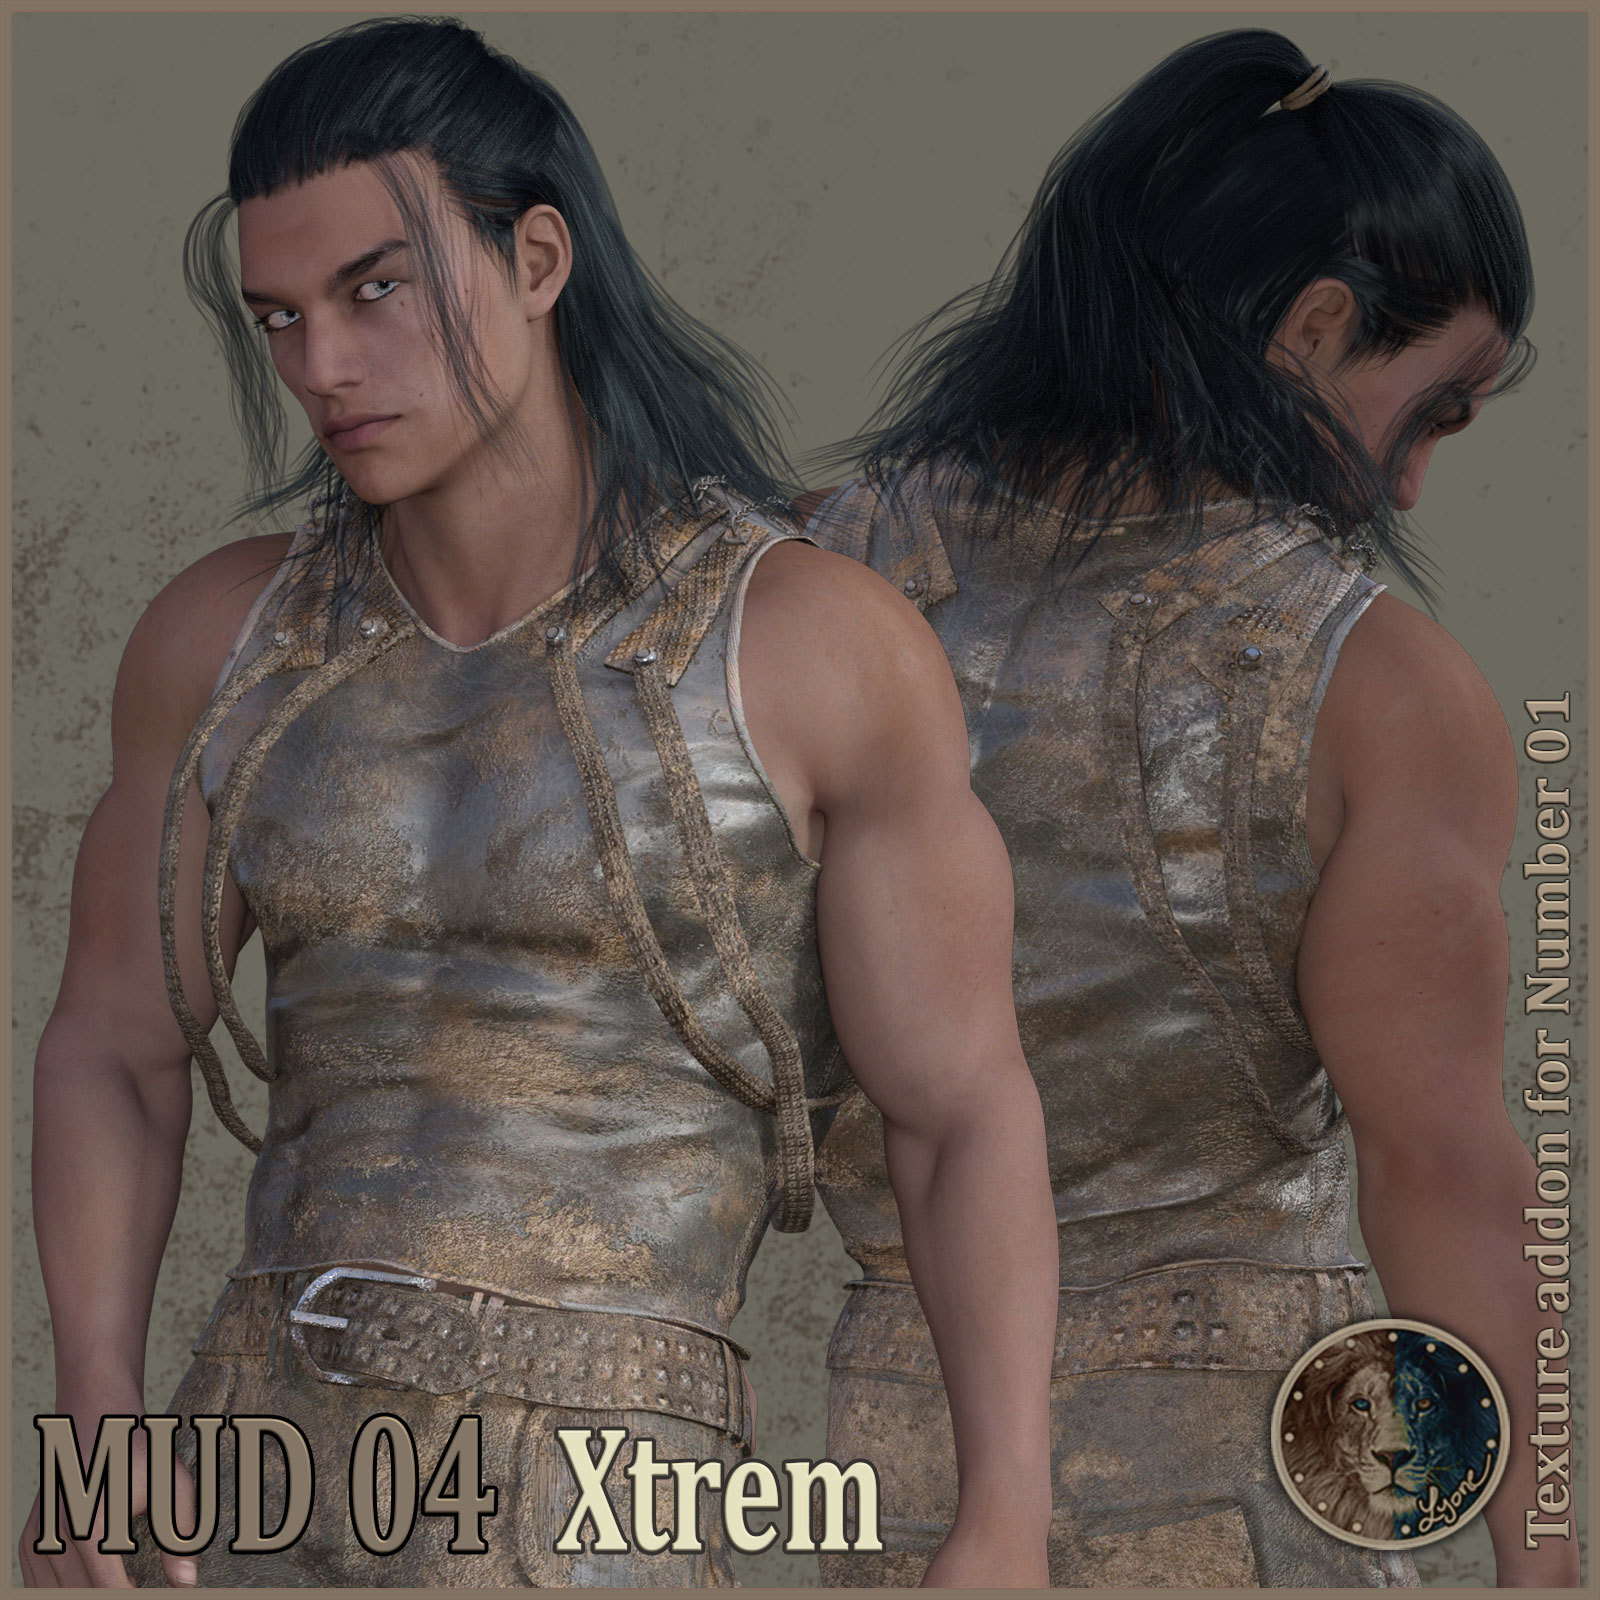 Mud 04 Xtrem for Lyones Number 1 by Lyone